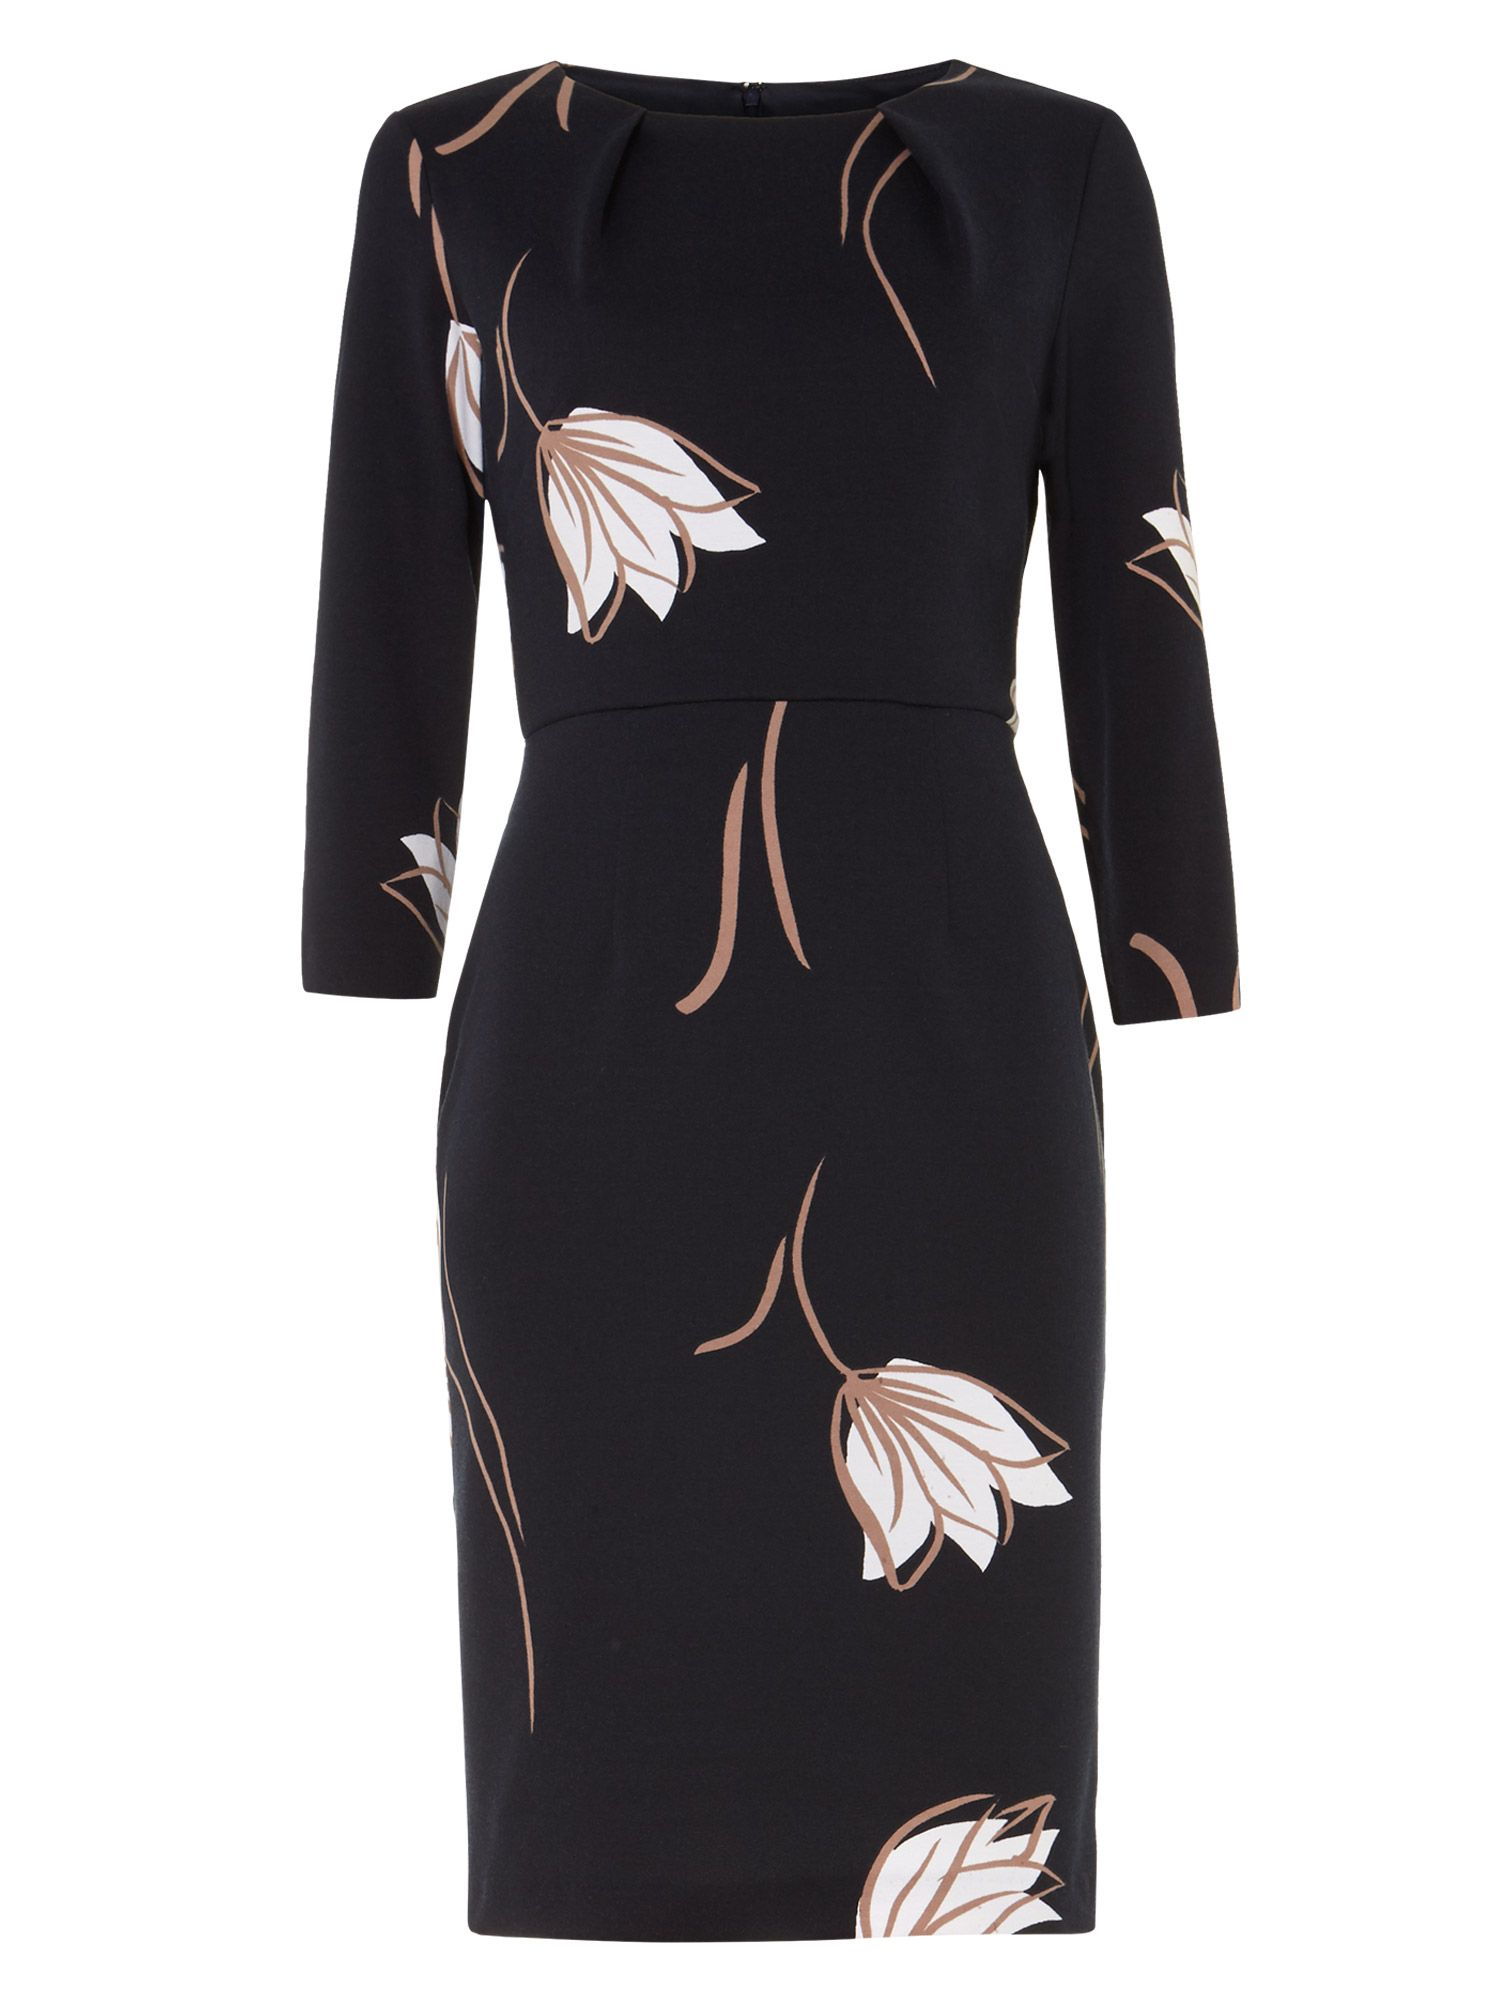 Phase eight black petal dress